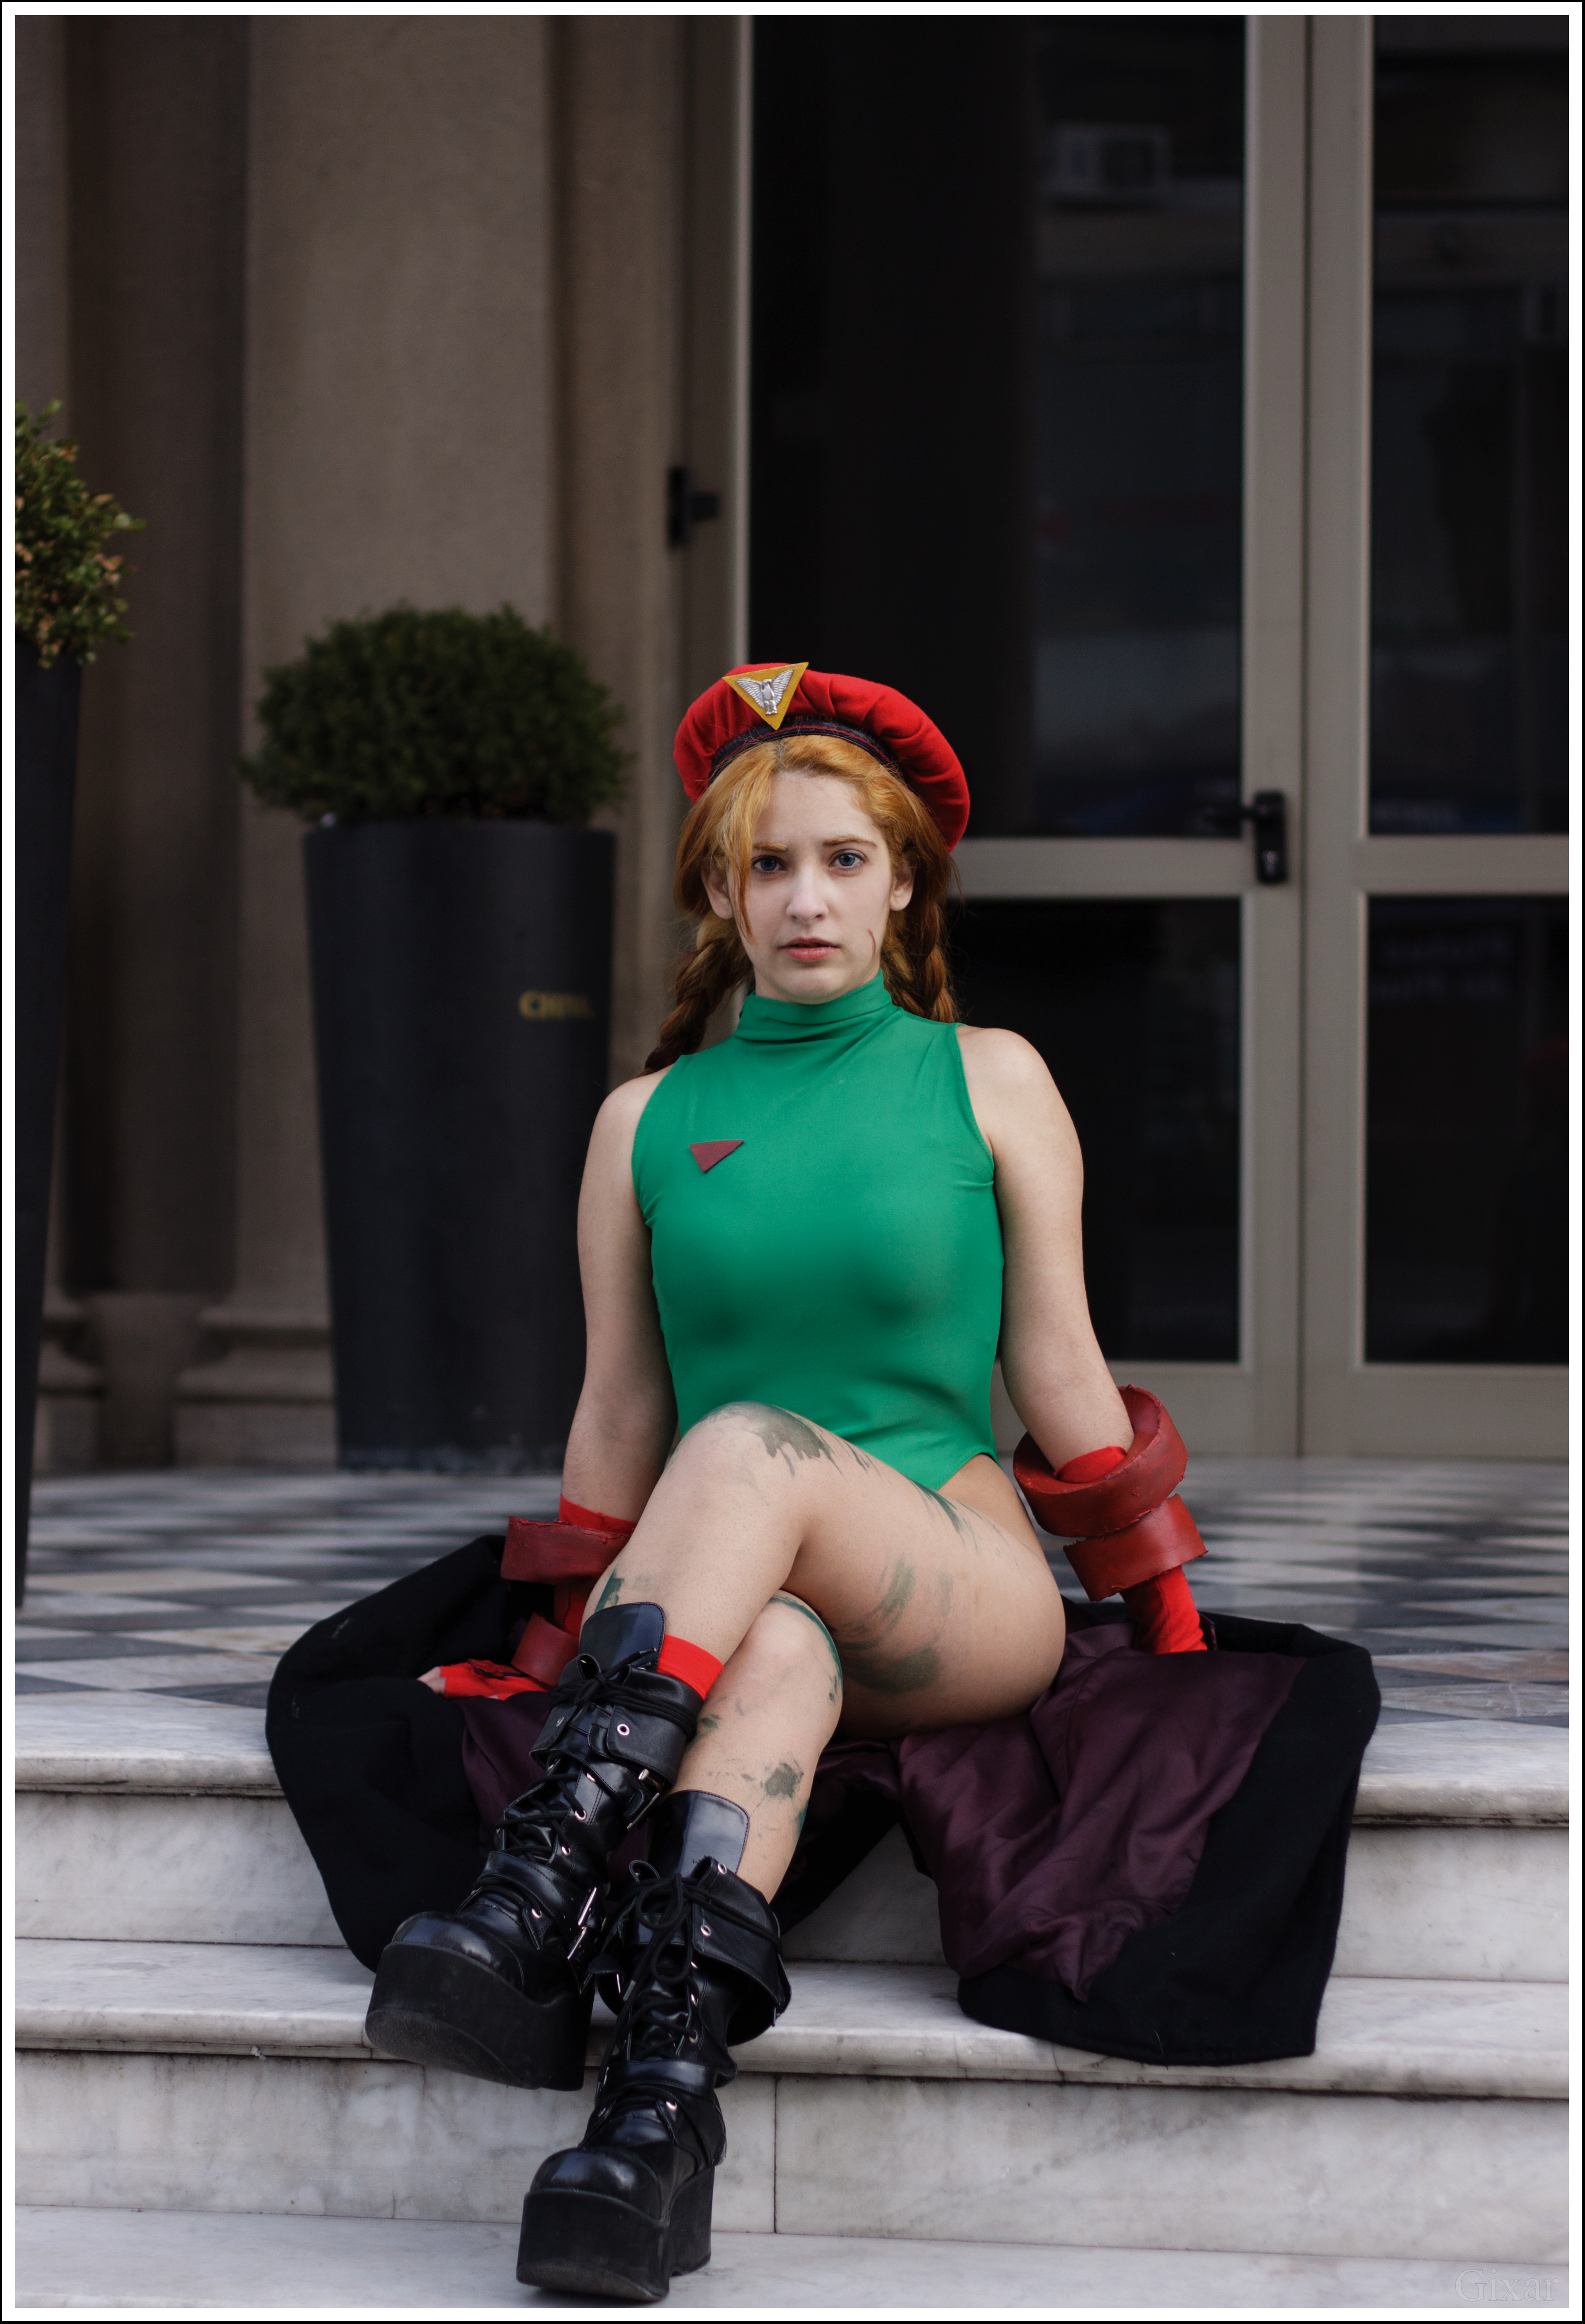 Cammy white 2.0 by VictoriaRusso